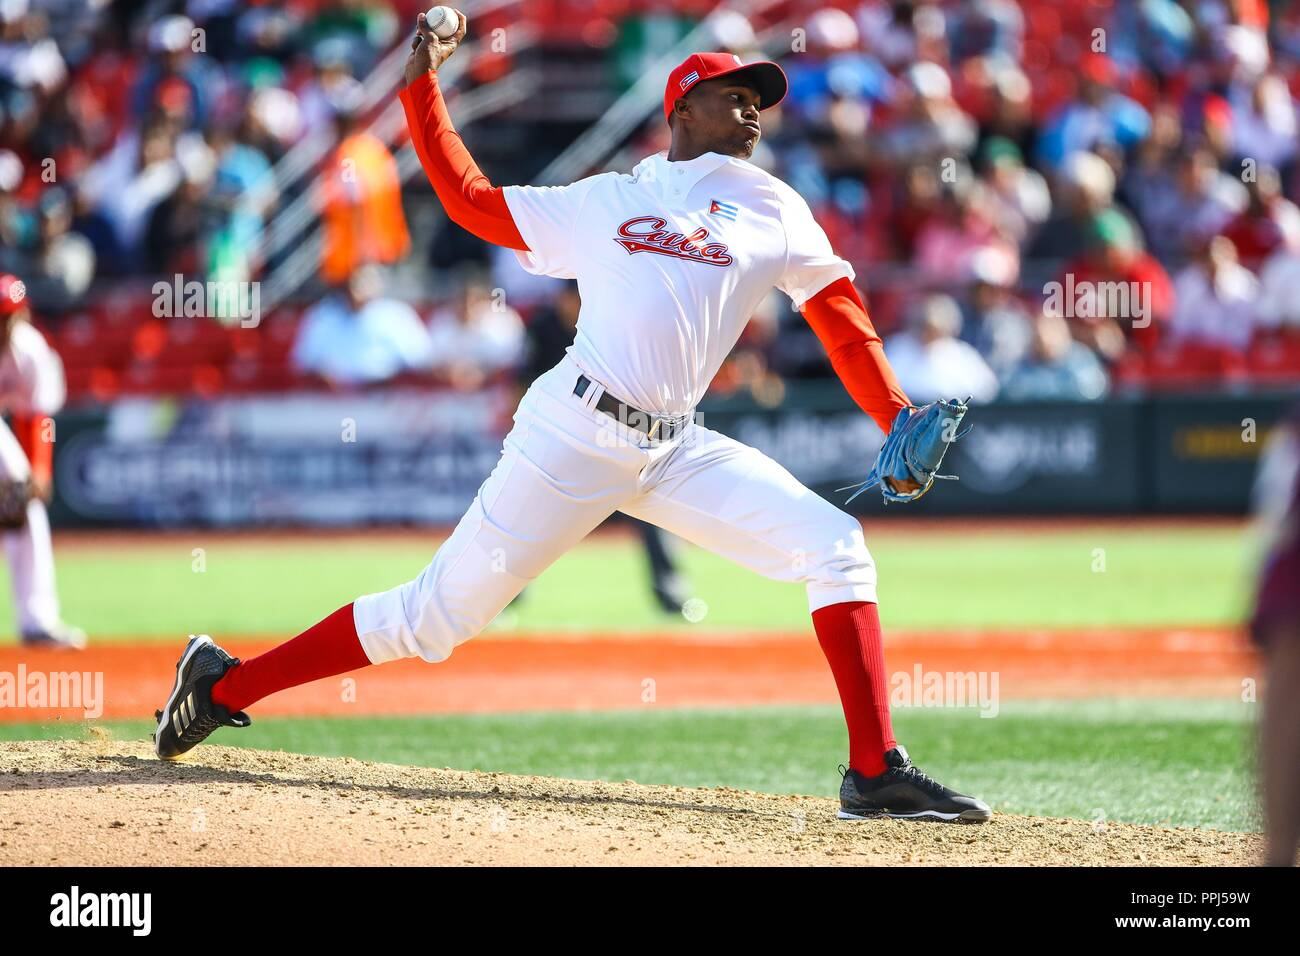 Raidel Martinez pitcher closer of the Alazanes of Granma Cuba, takes the save to win game 6 races by 4, during the baseball game of the Caribbean Seri - Stock Image